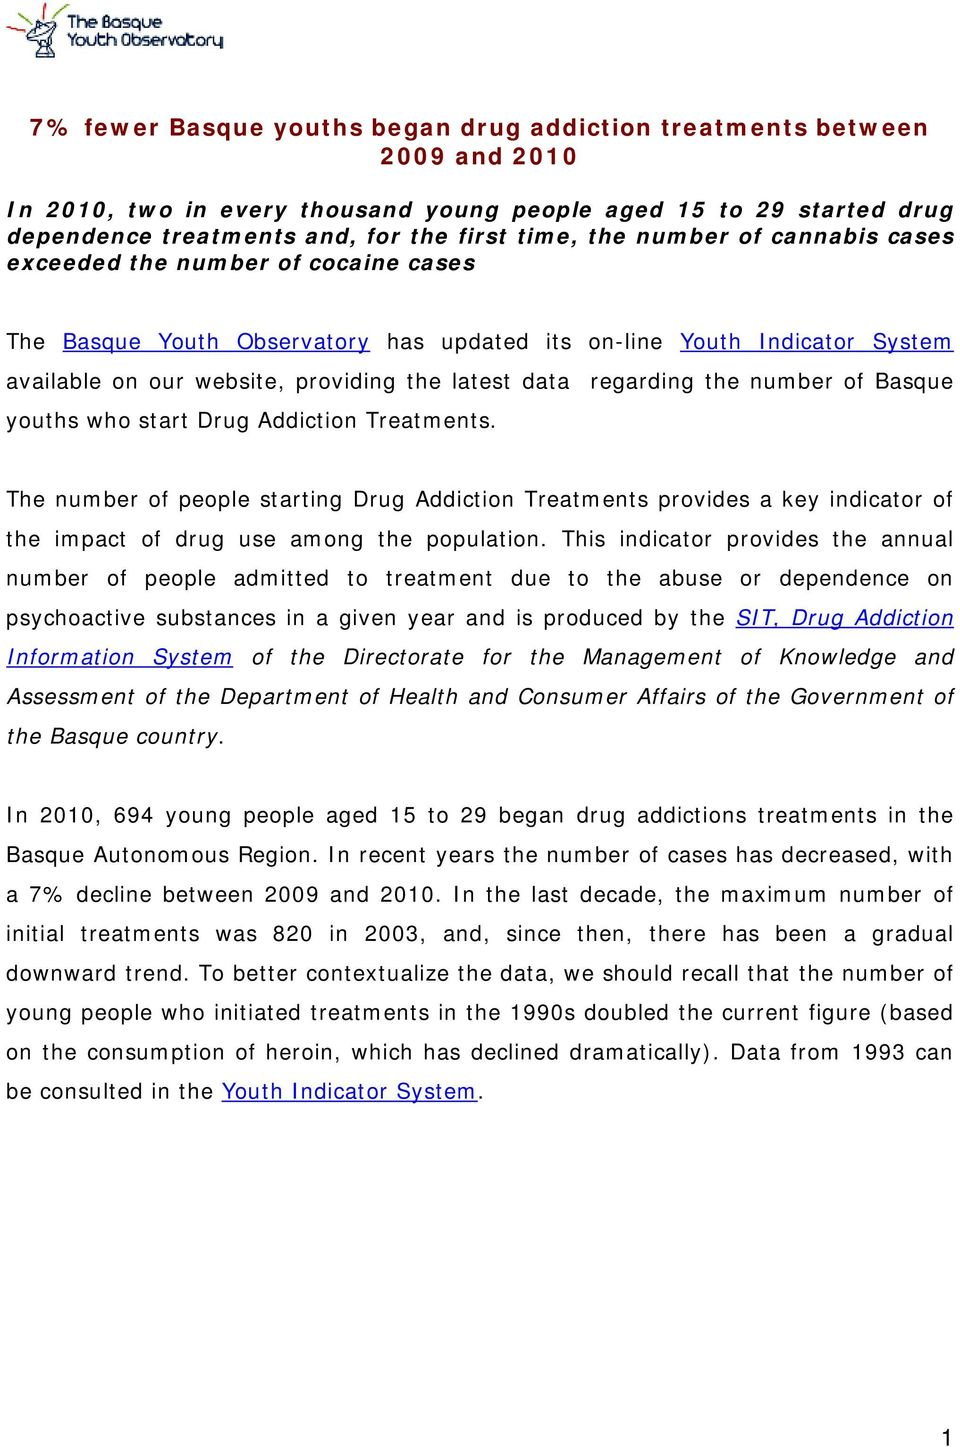 number of Basque youths who start Drug Addiction Treatments. The number of people starting Drug Addiction Treatments provides a key indicator of the impact of drug use among the population.